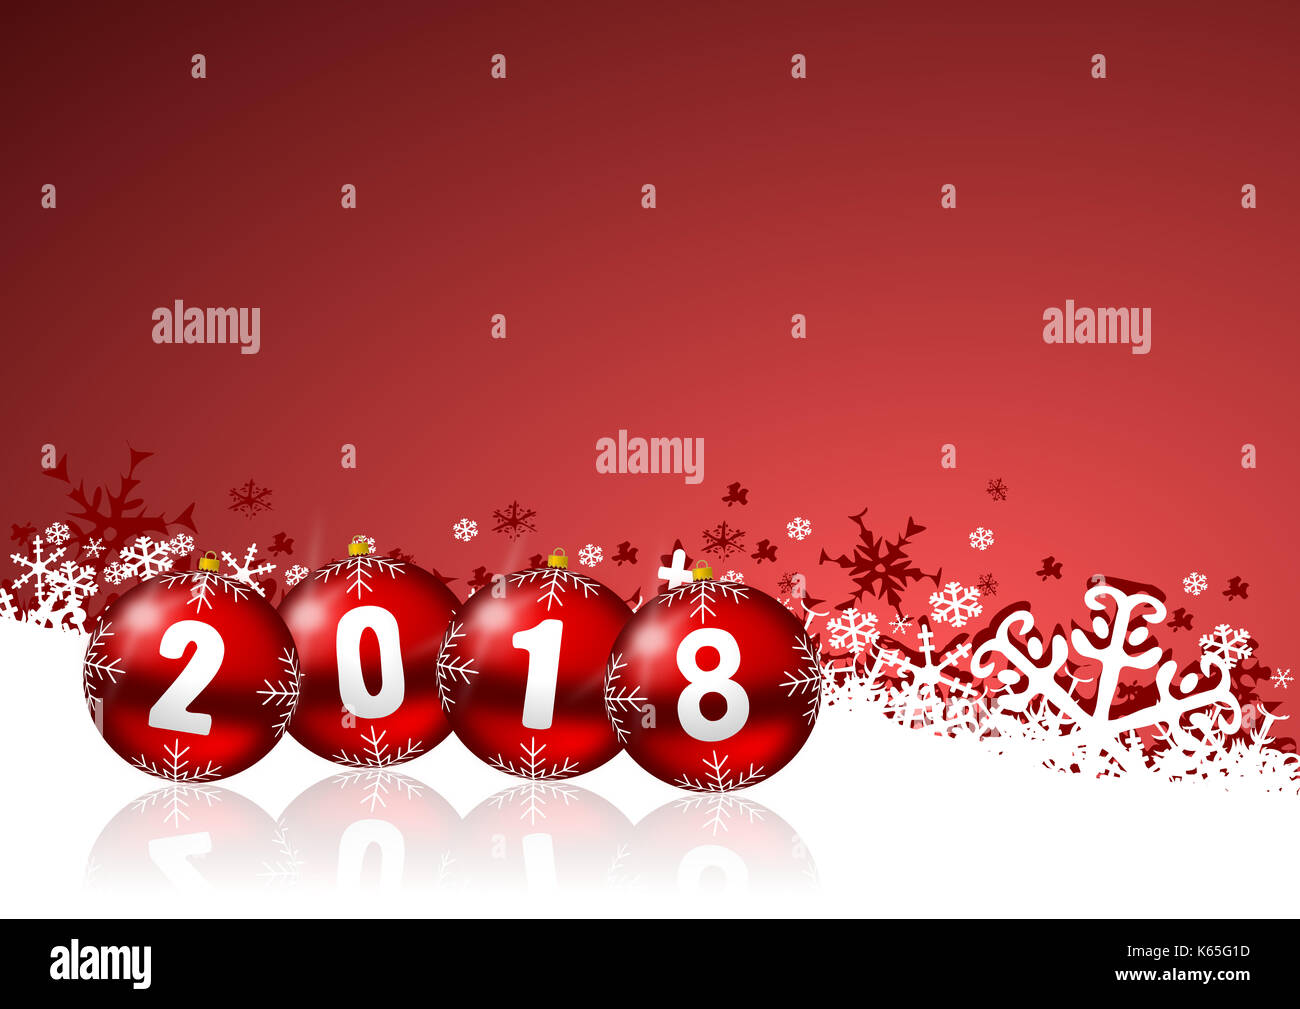 2018 new year background with christmas balls and snowflakes stock image